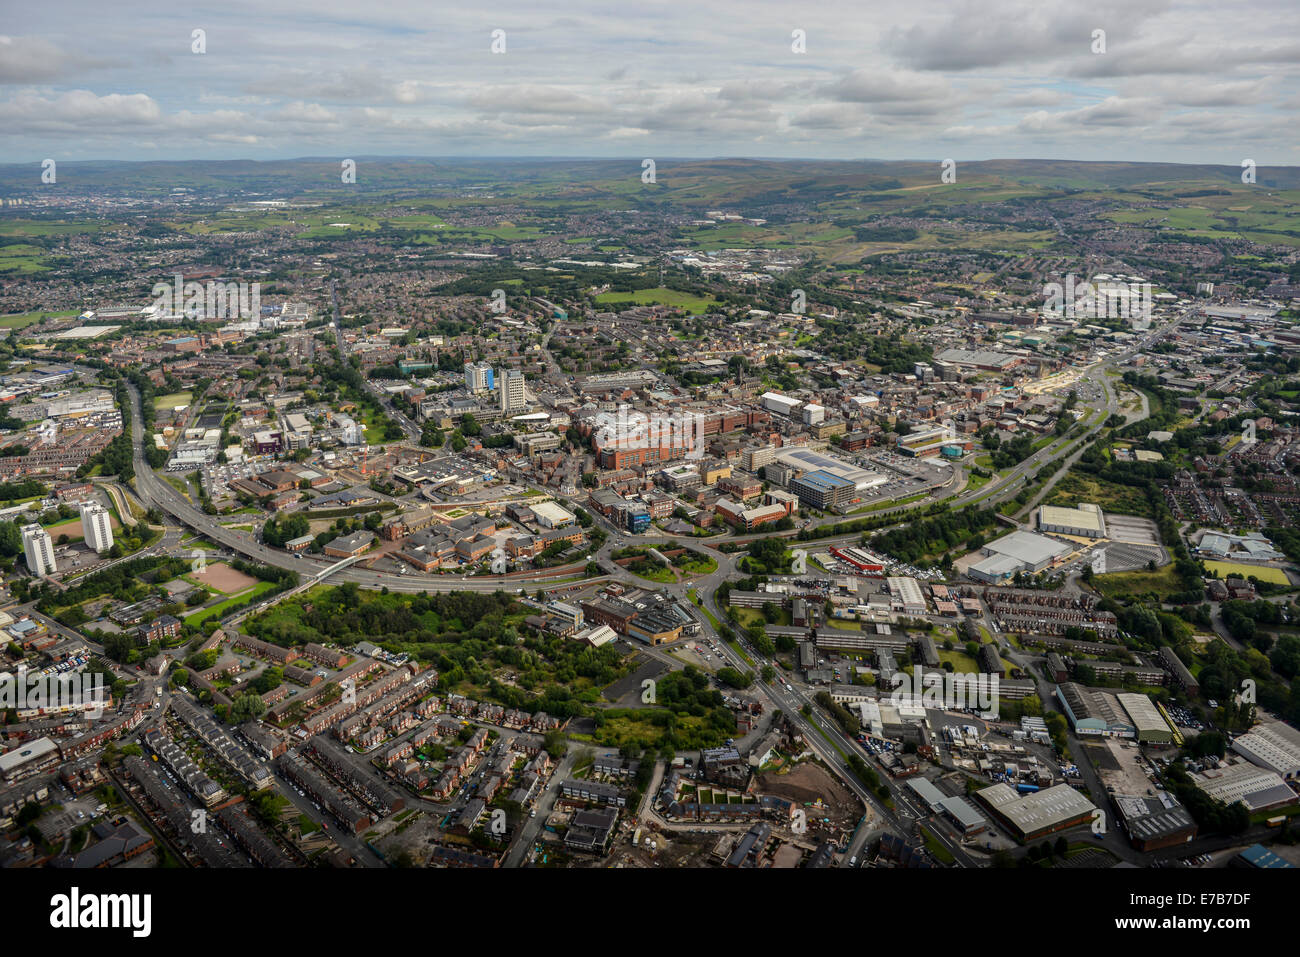 An aerial view across the centre of Oldham, Greater Manchester. Open countryside is visible in the distance. - Stock Image